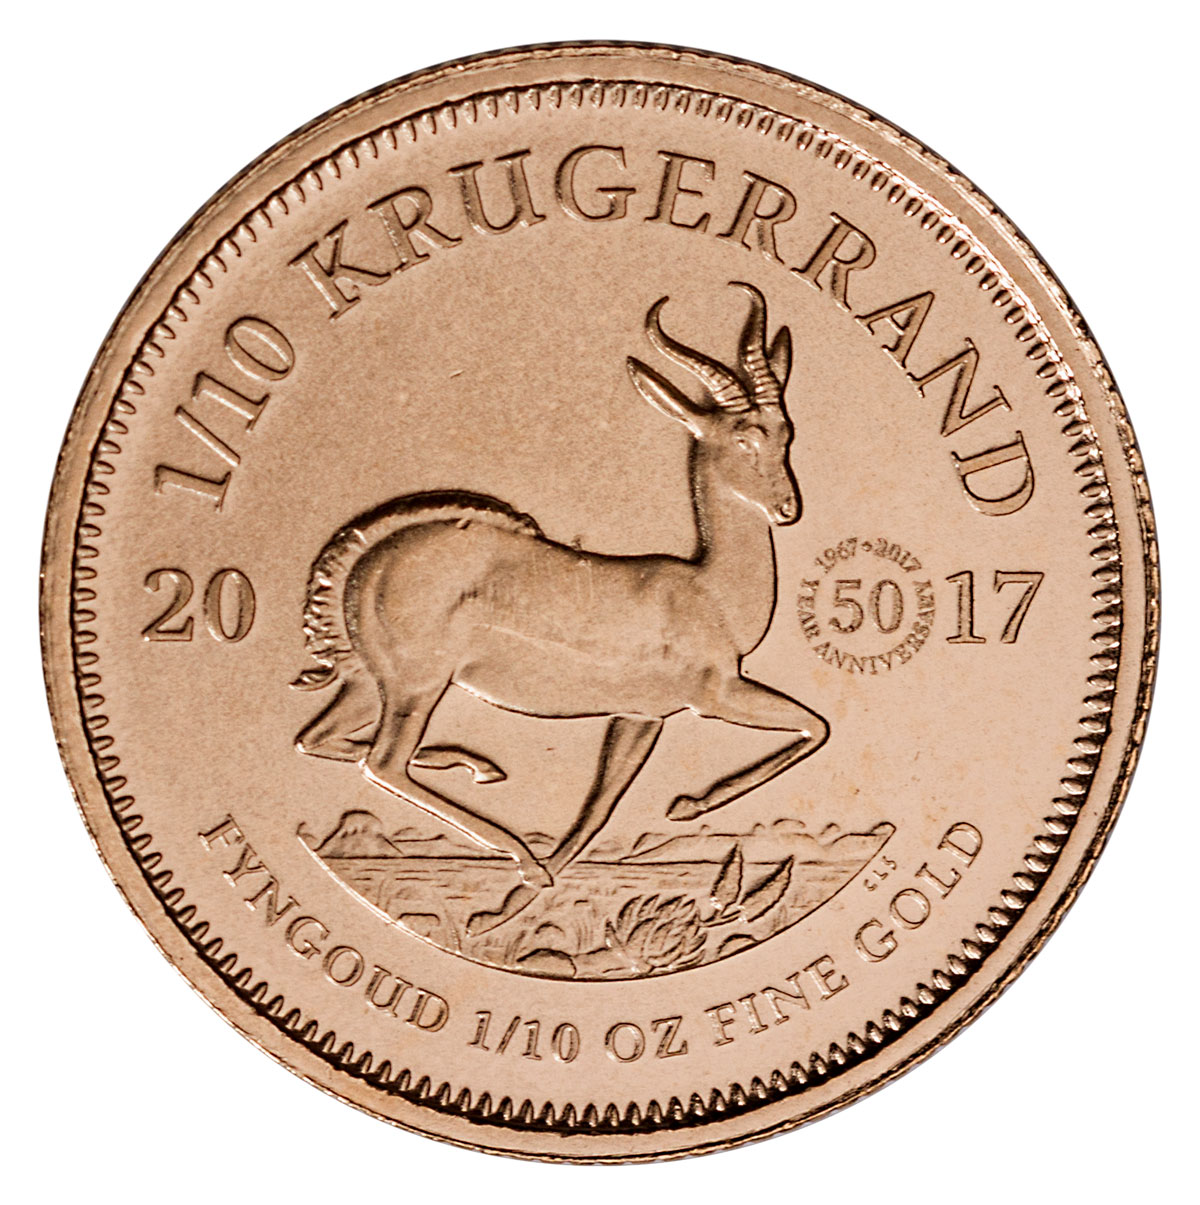 2017 South Africa 1/10 oz Gold Krugerrand - 50th Anniversary Privy Coin BU